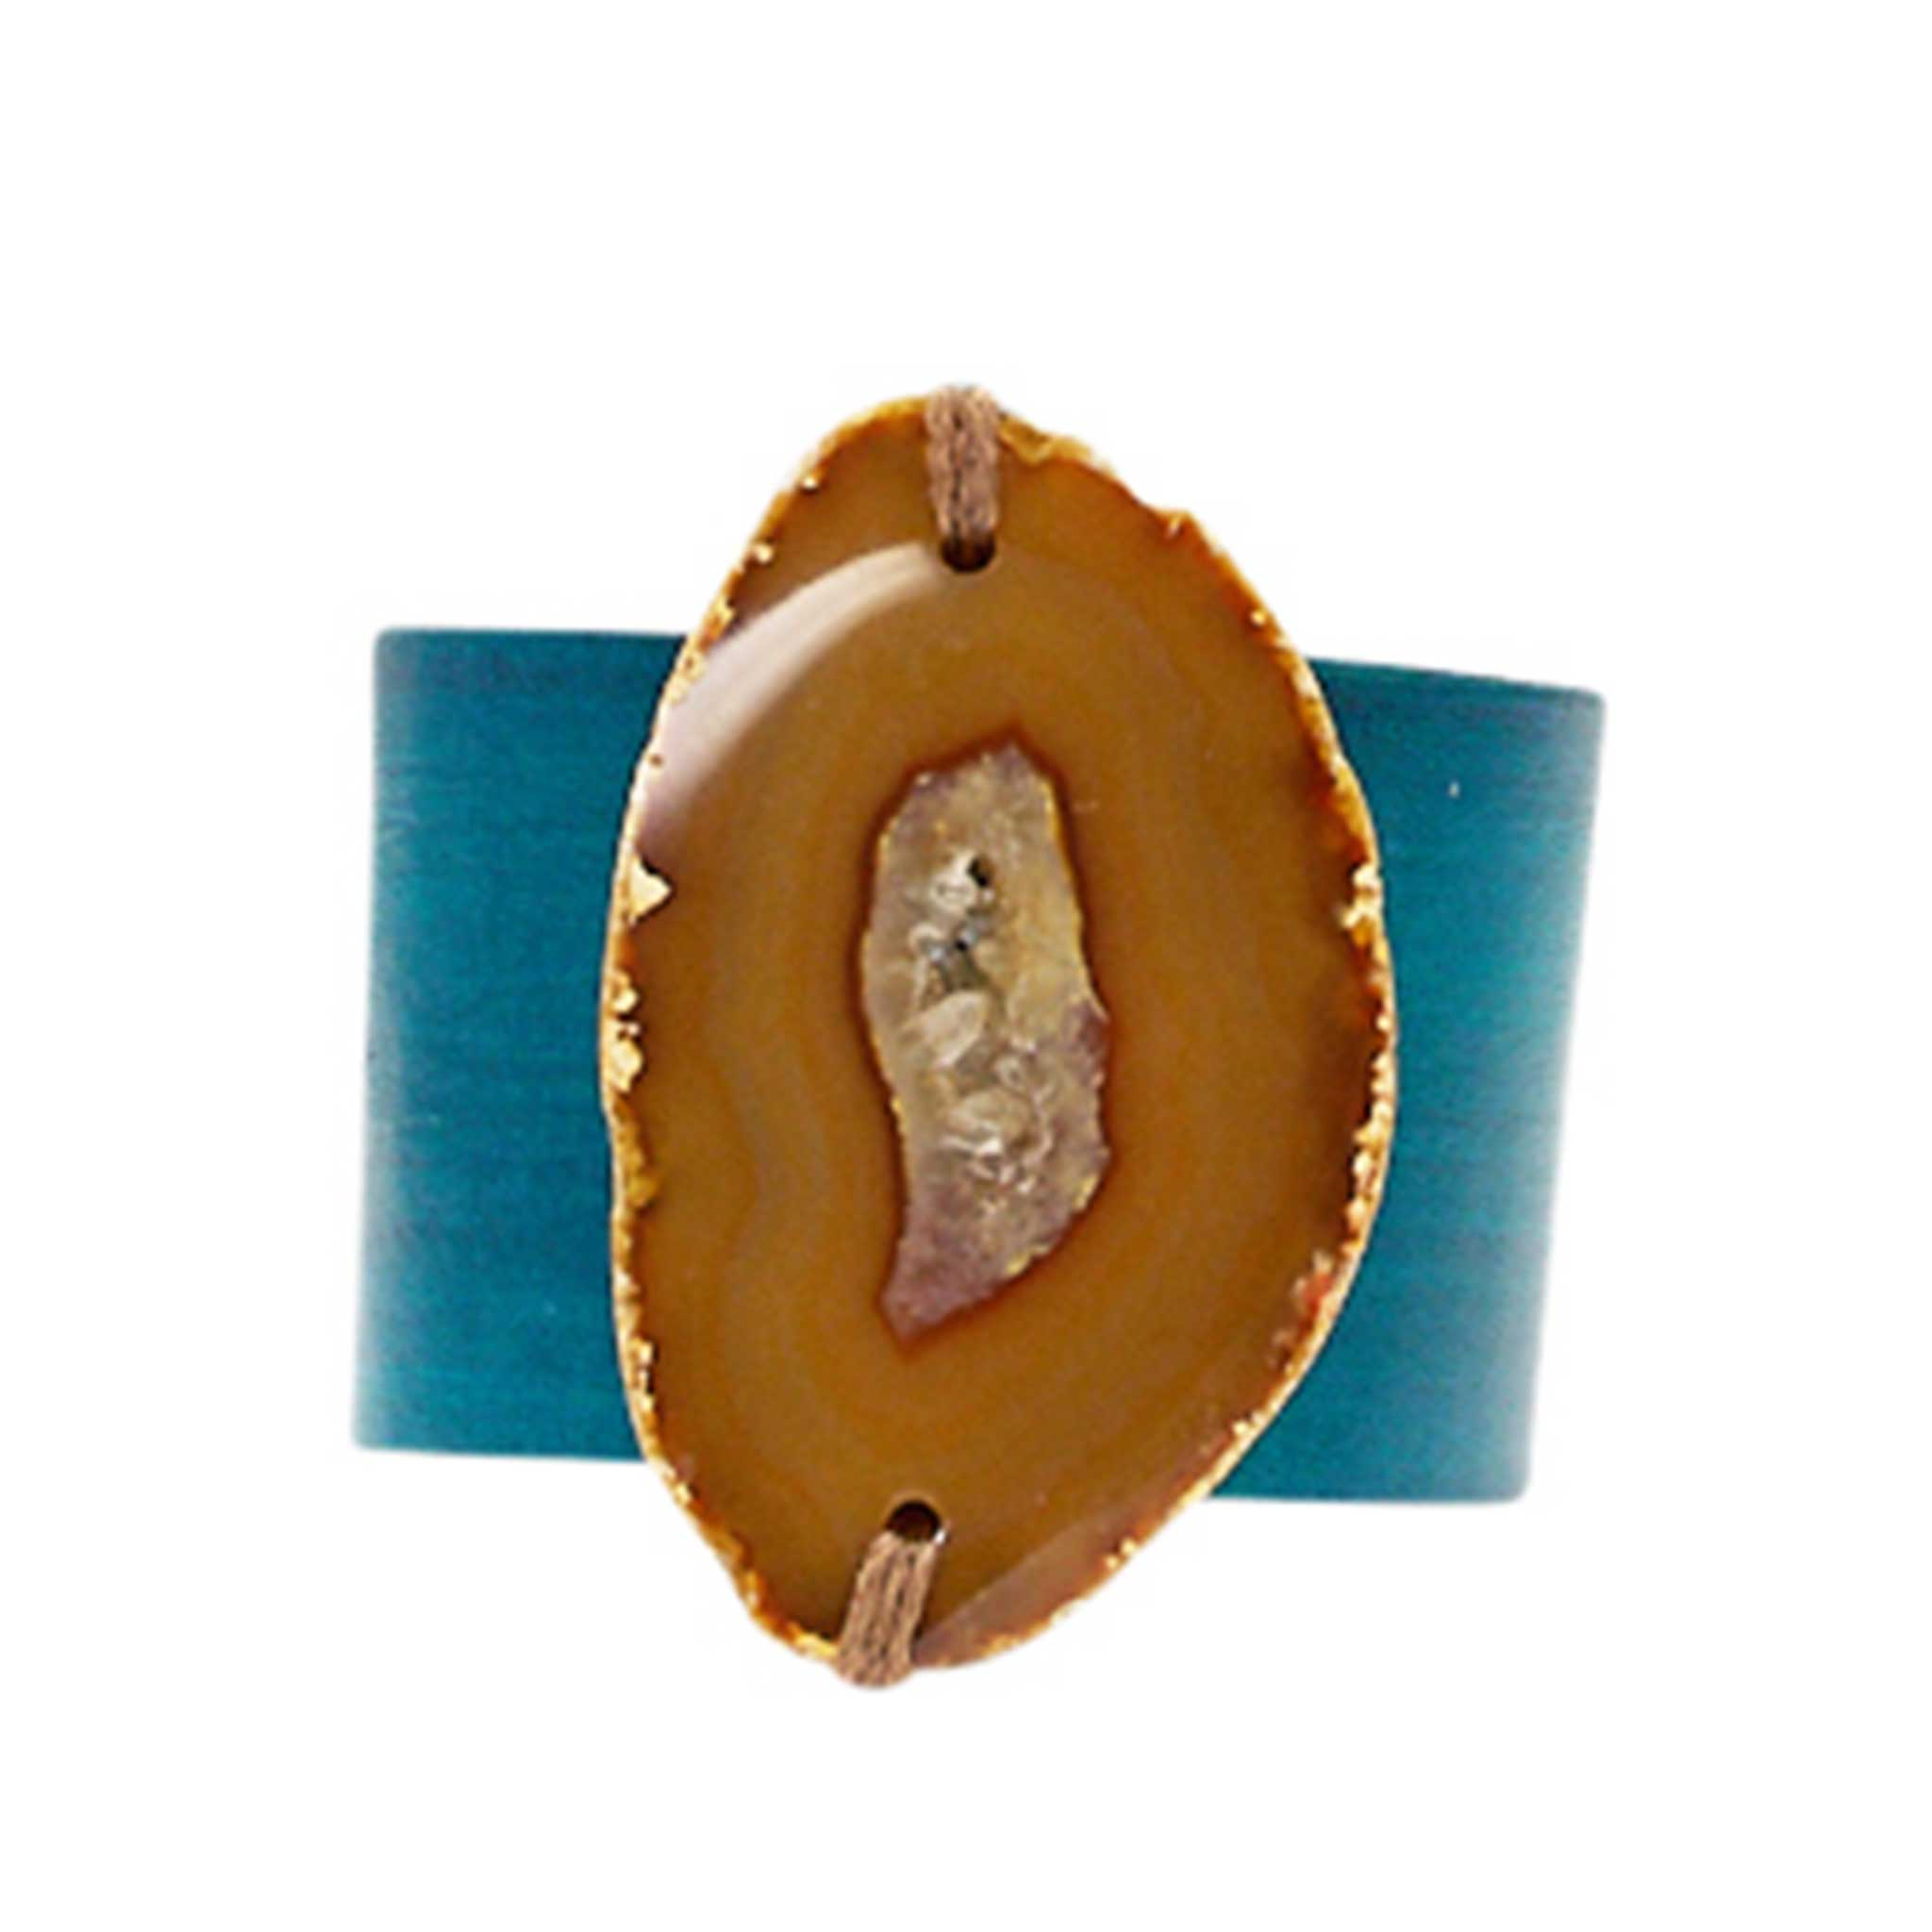 HANDCRAFTED CUFF - TEAL LEATHER WITH YELLOW AGATE - 4CMTEYE